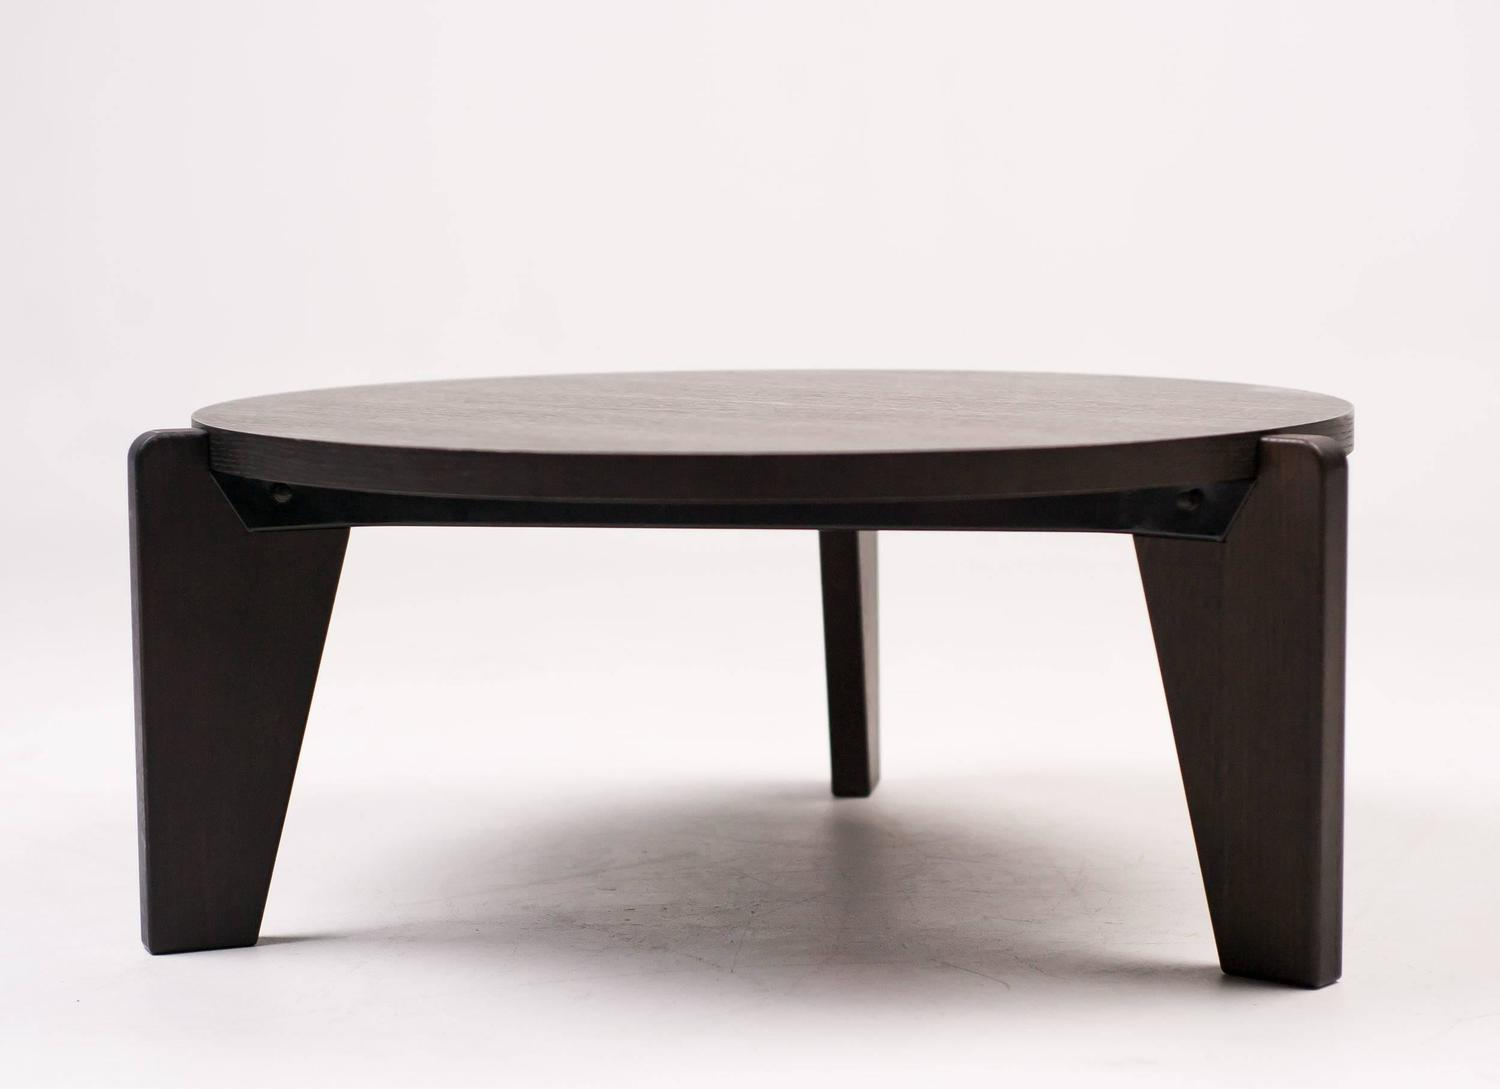 Gu Ridon Bas Coffee Table By Vitra Prouv Collection For Sale At 1stdibs